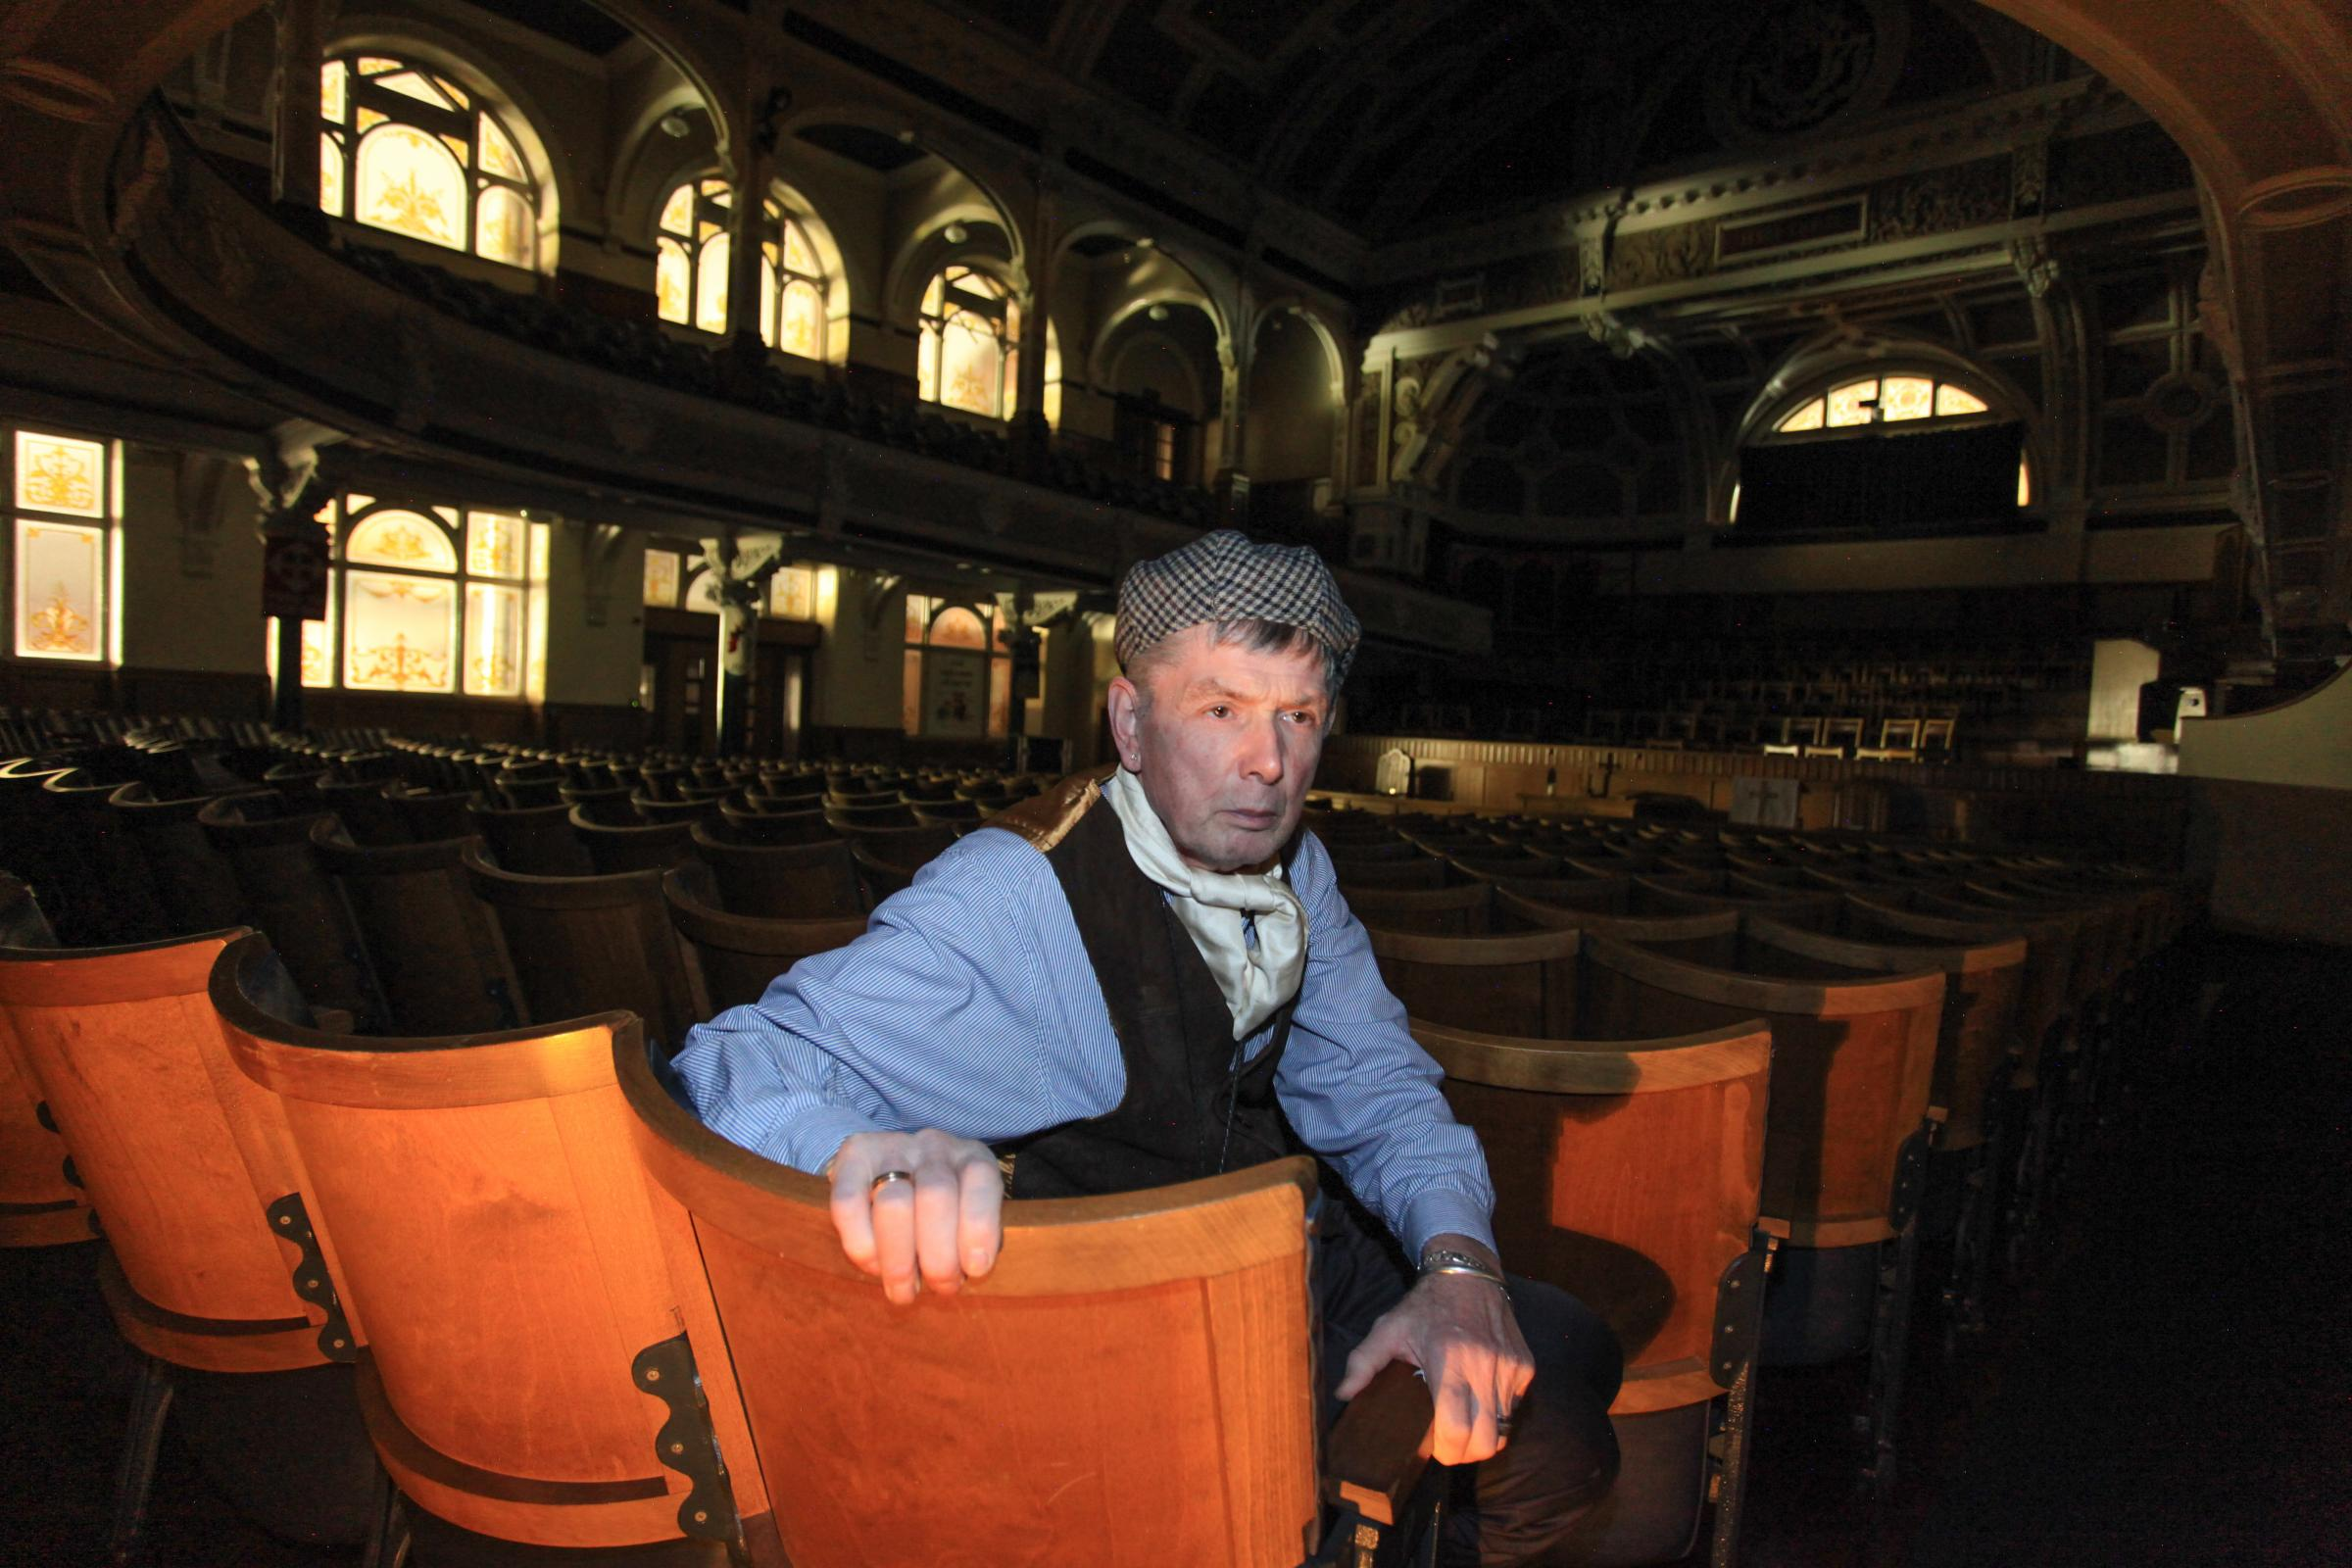 4 February 2019. Bolton, Lanacashire. Bolton Methodist Victoria Hall. Barry Massey, who leads the 'Night Time Heritage Tours' during witer evenings through the labyrinthine maze of passages and hidden rooms in theunderground passageways below the